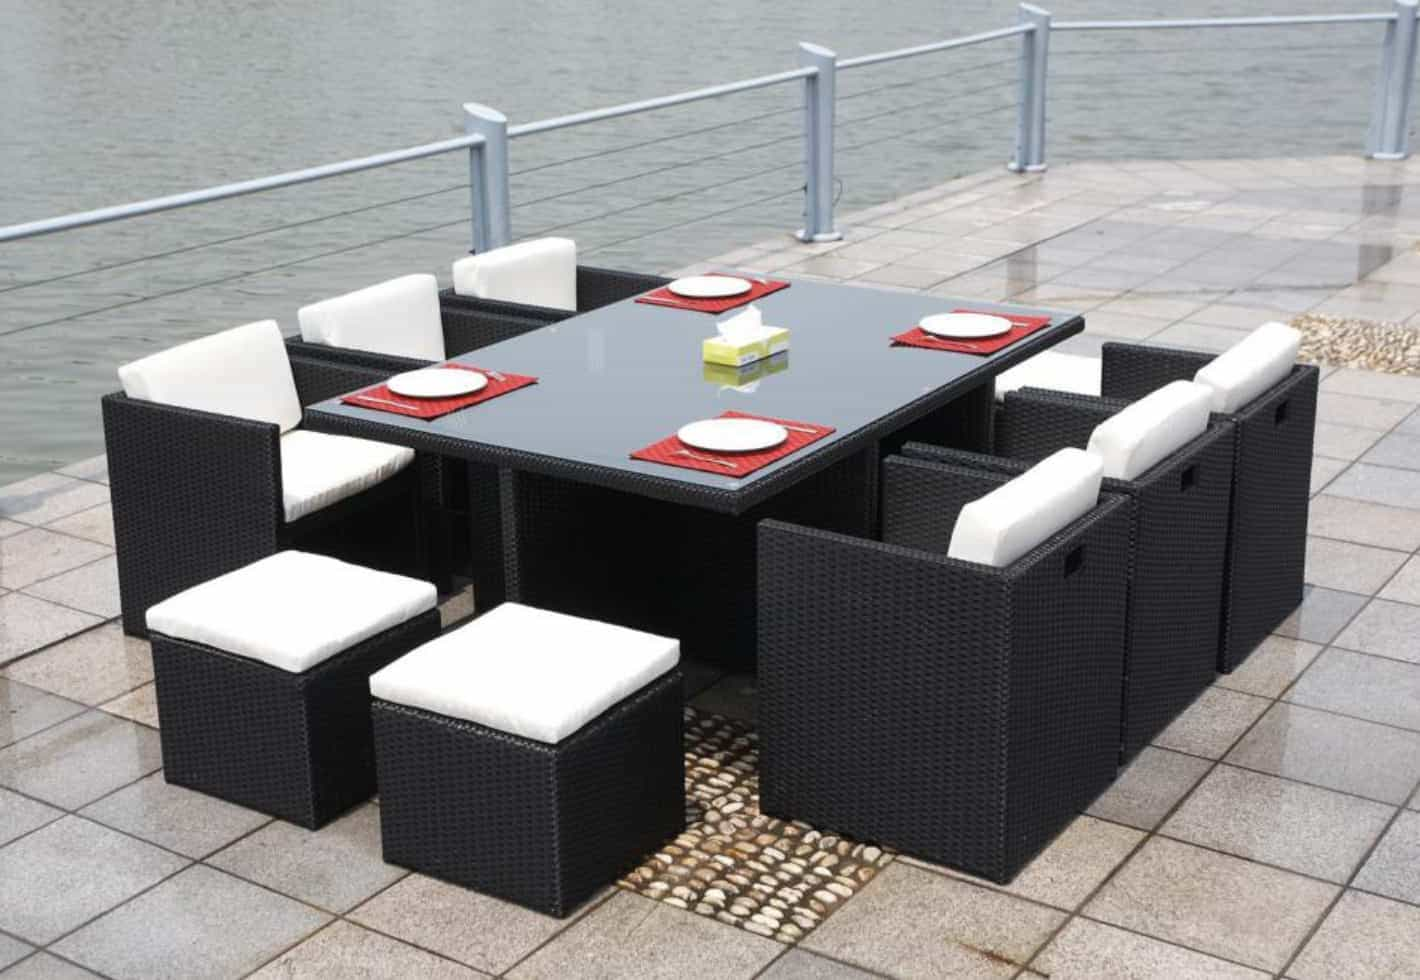 rattan garden furniture sale ireland outdoor furniture. Black Bedroom Furniture Sets. Home Design Ideas